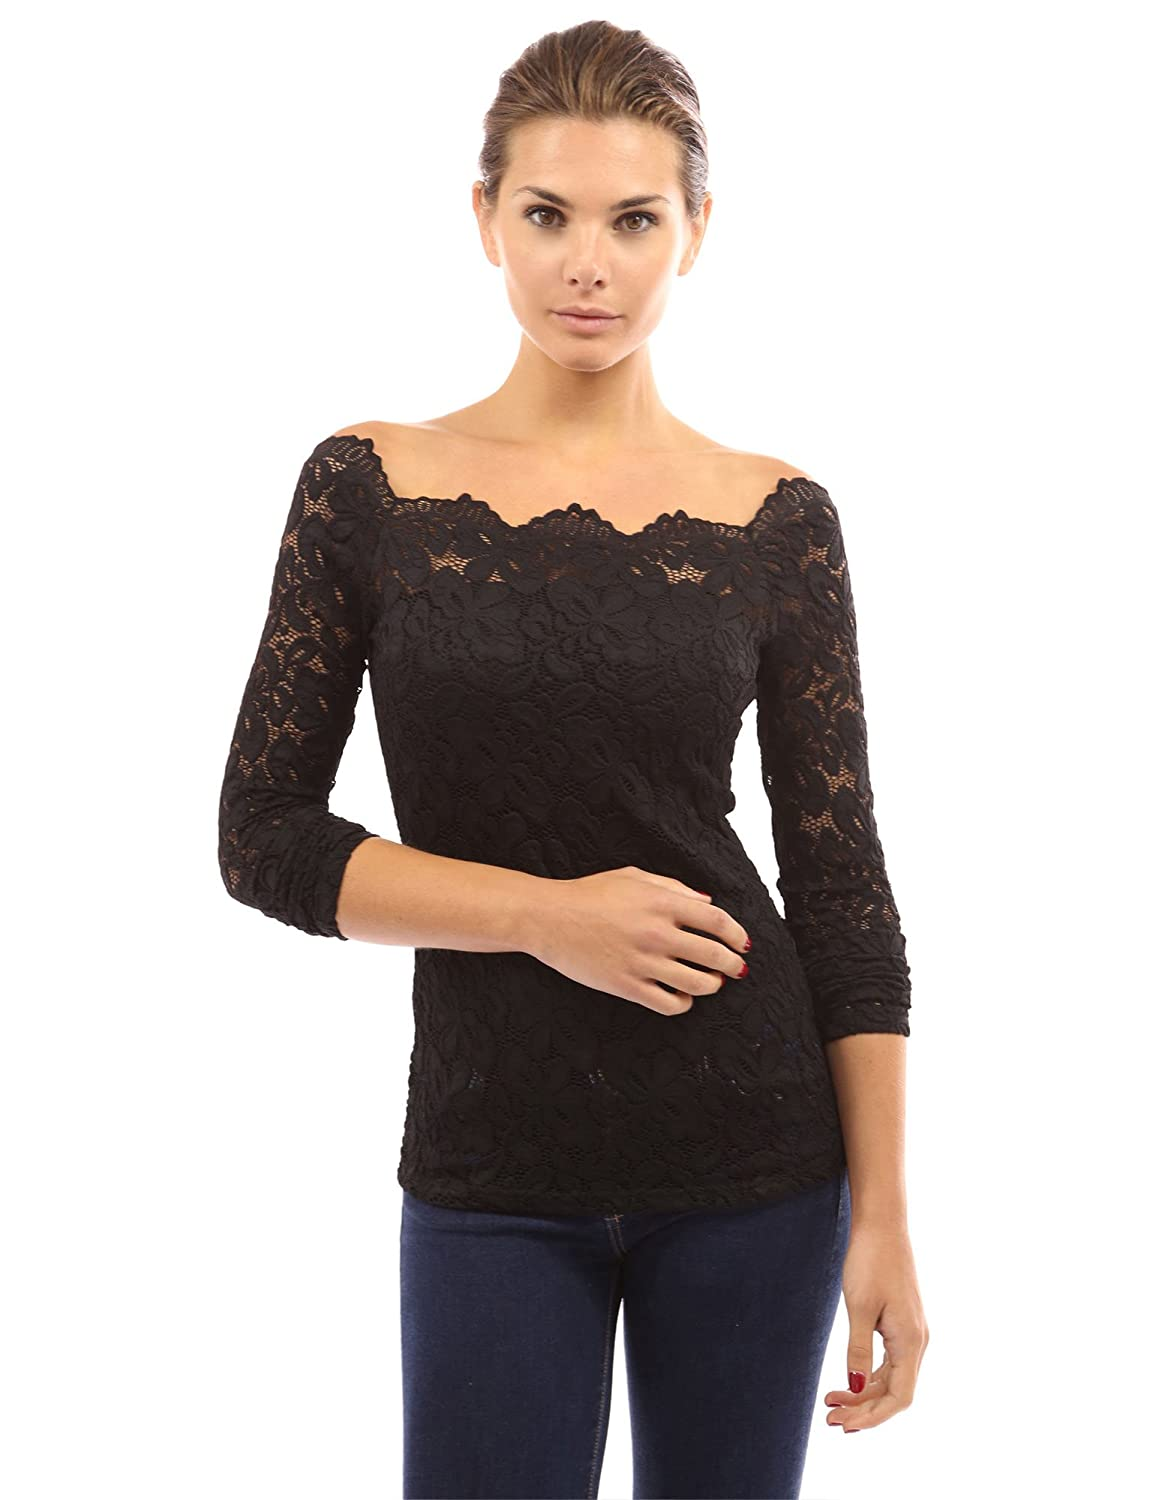 d06852eda58398 PattyBoutik Women Floral Lace Off Shoulder Top at Amazon Women s Clothing  store